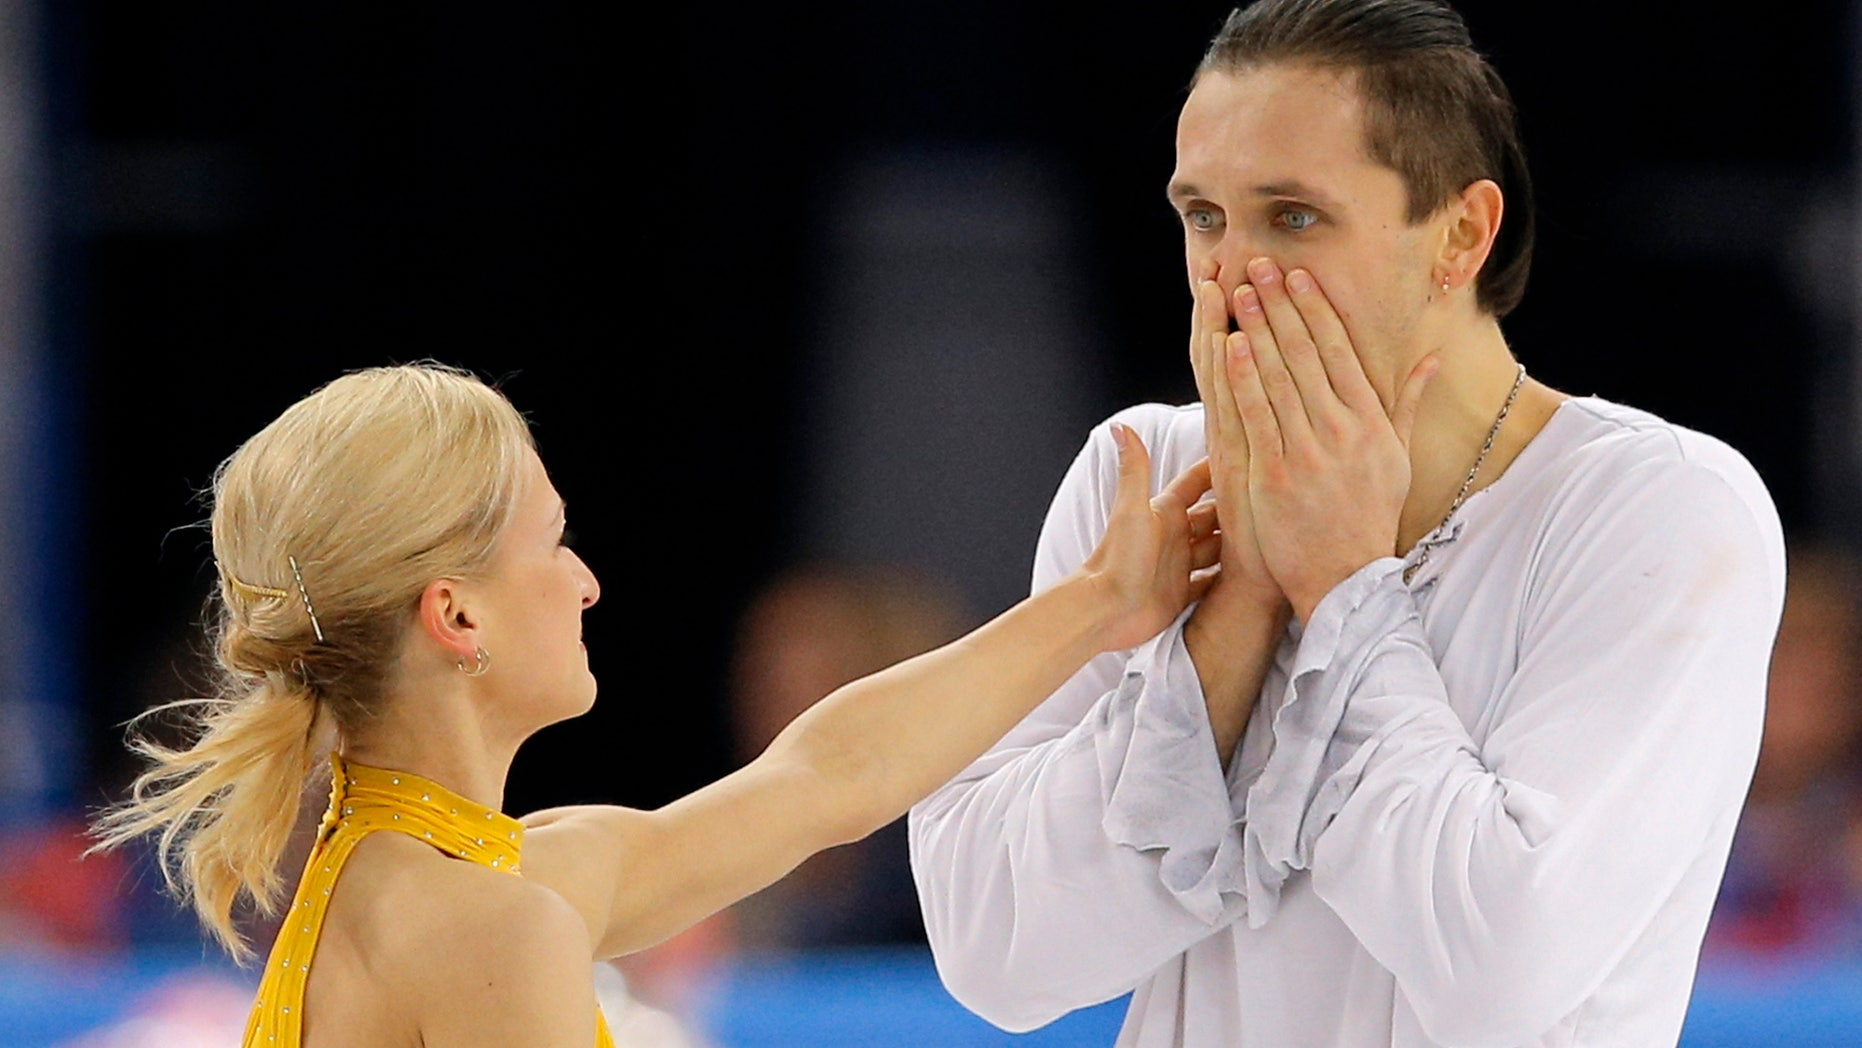 Feb. 12, 2014: Tatiana Volosozhar and Maxim Trankov of Russia react after they competed in the pairs free skate figure skating competition at the Iceberg Skating Palace during the 2014 Winter Olympics in Sochi, Russia.